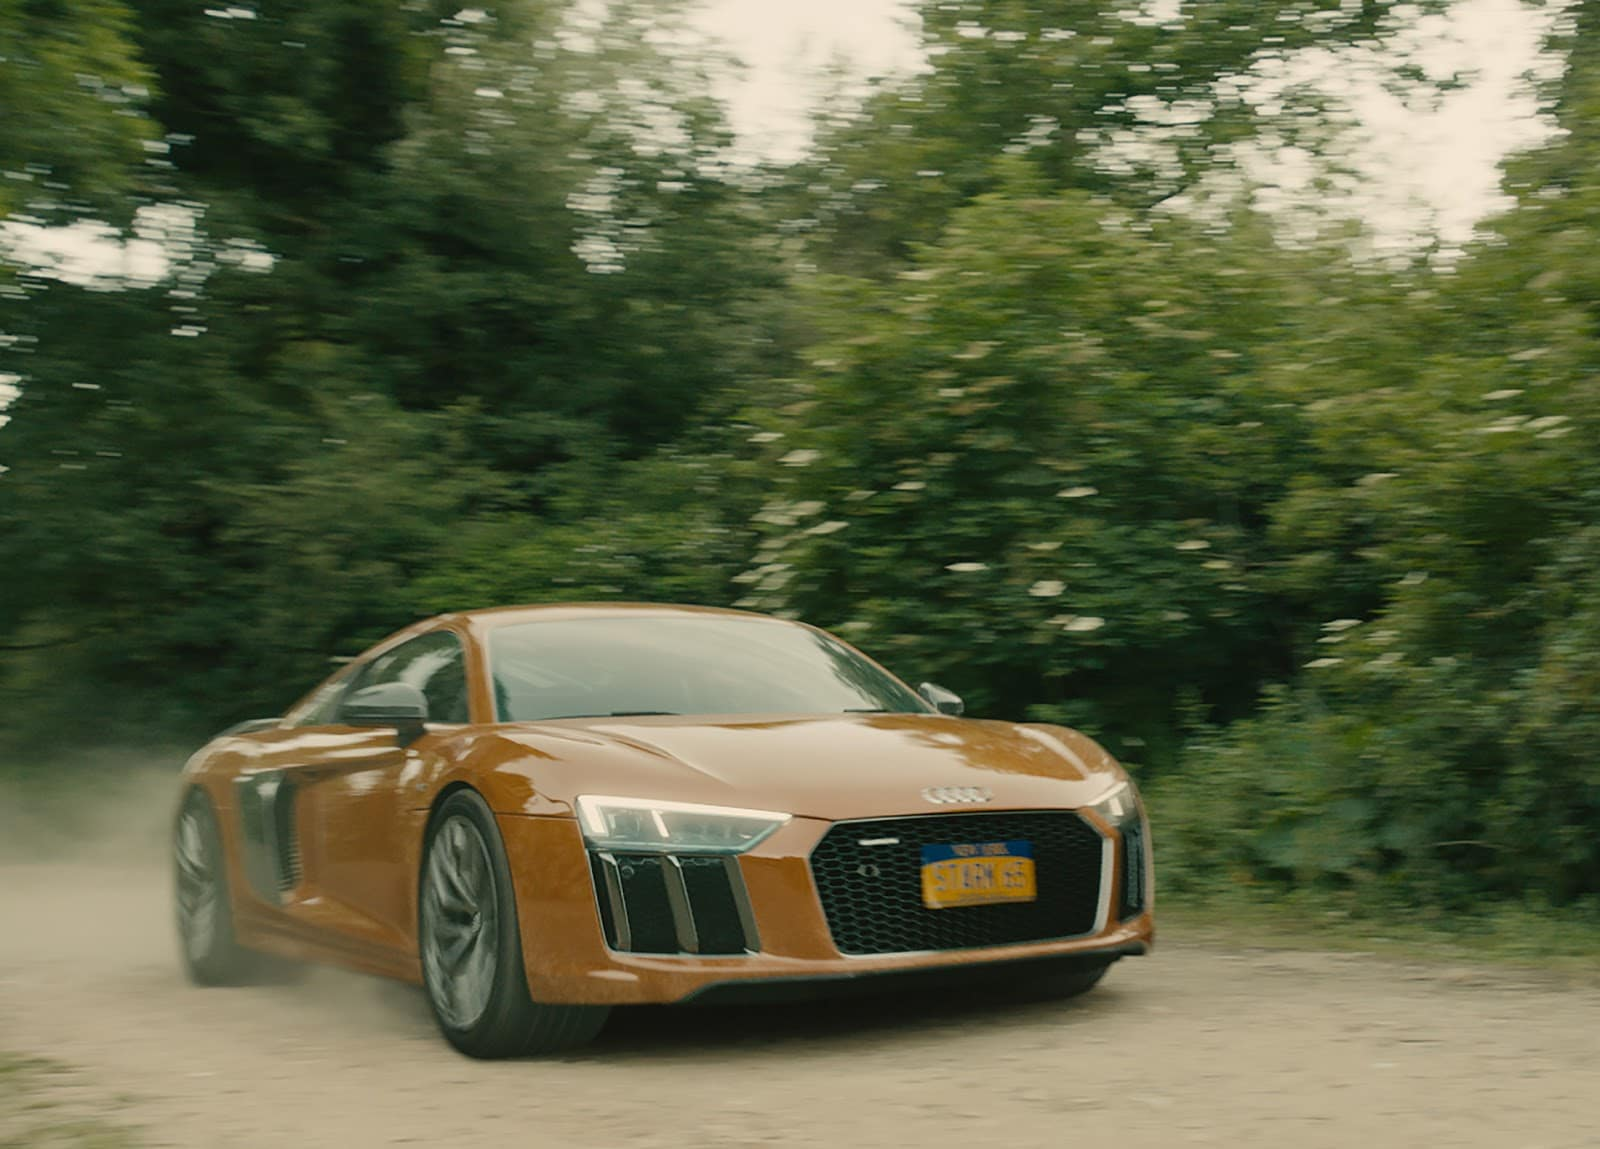 Tony Stark drives the new Audi R8 in Avengers Age of Ultron Απονέμουμε τα Όσκαρ αυτοκινήτου